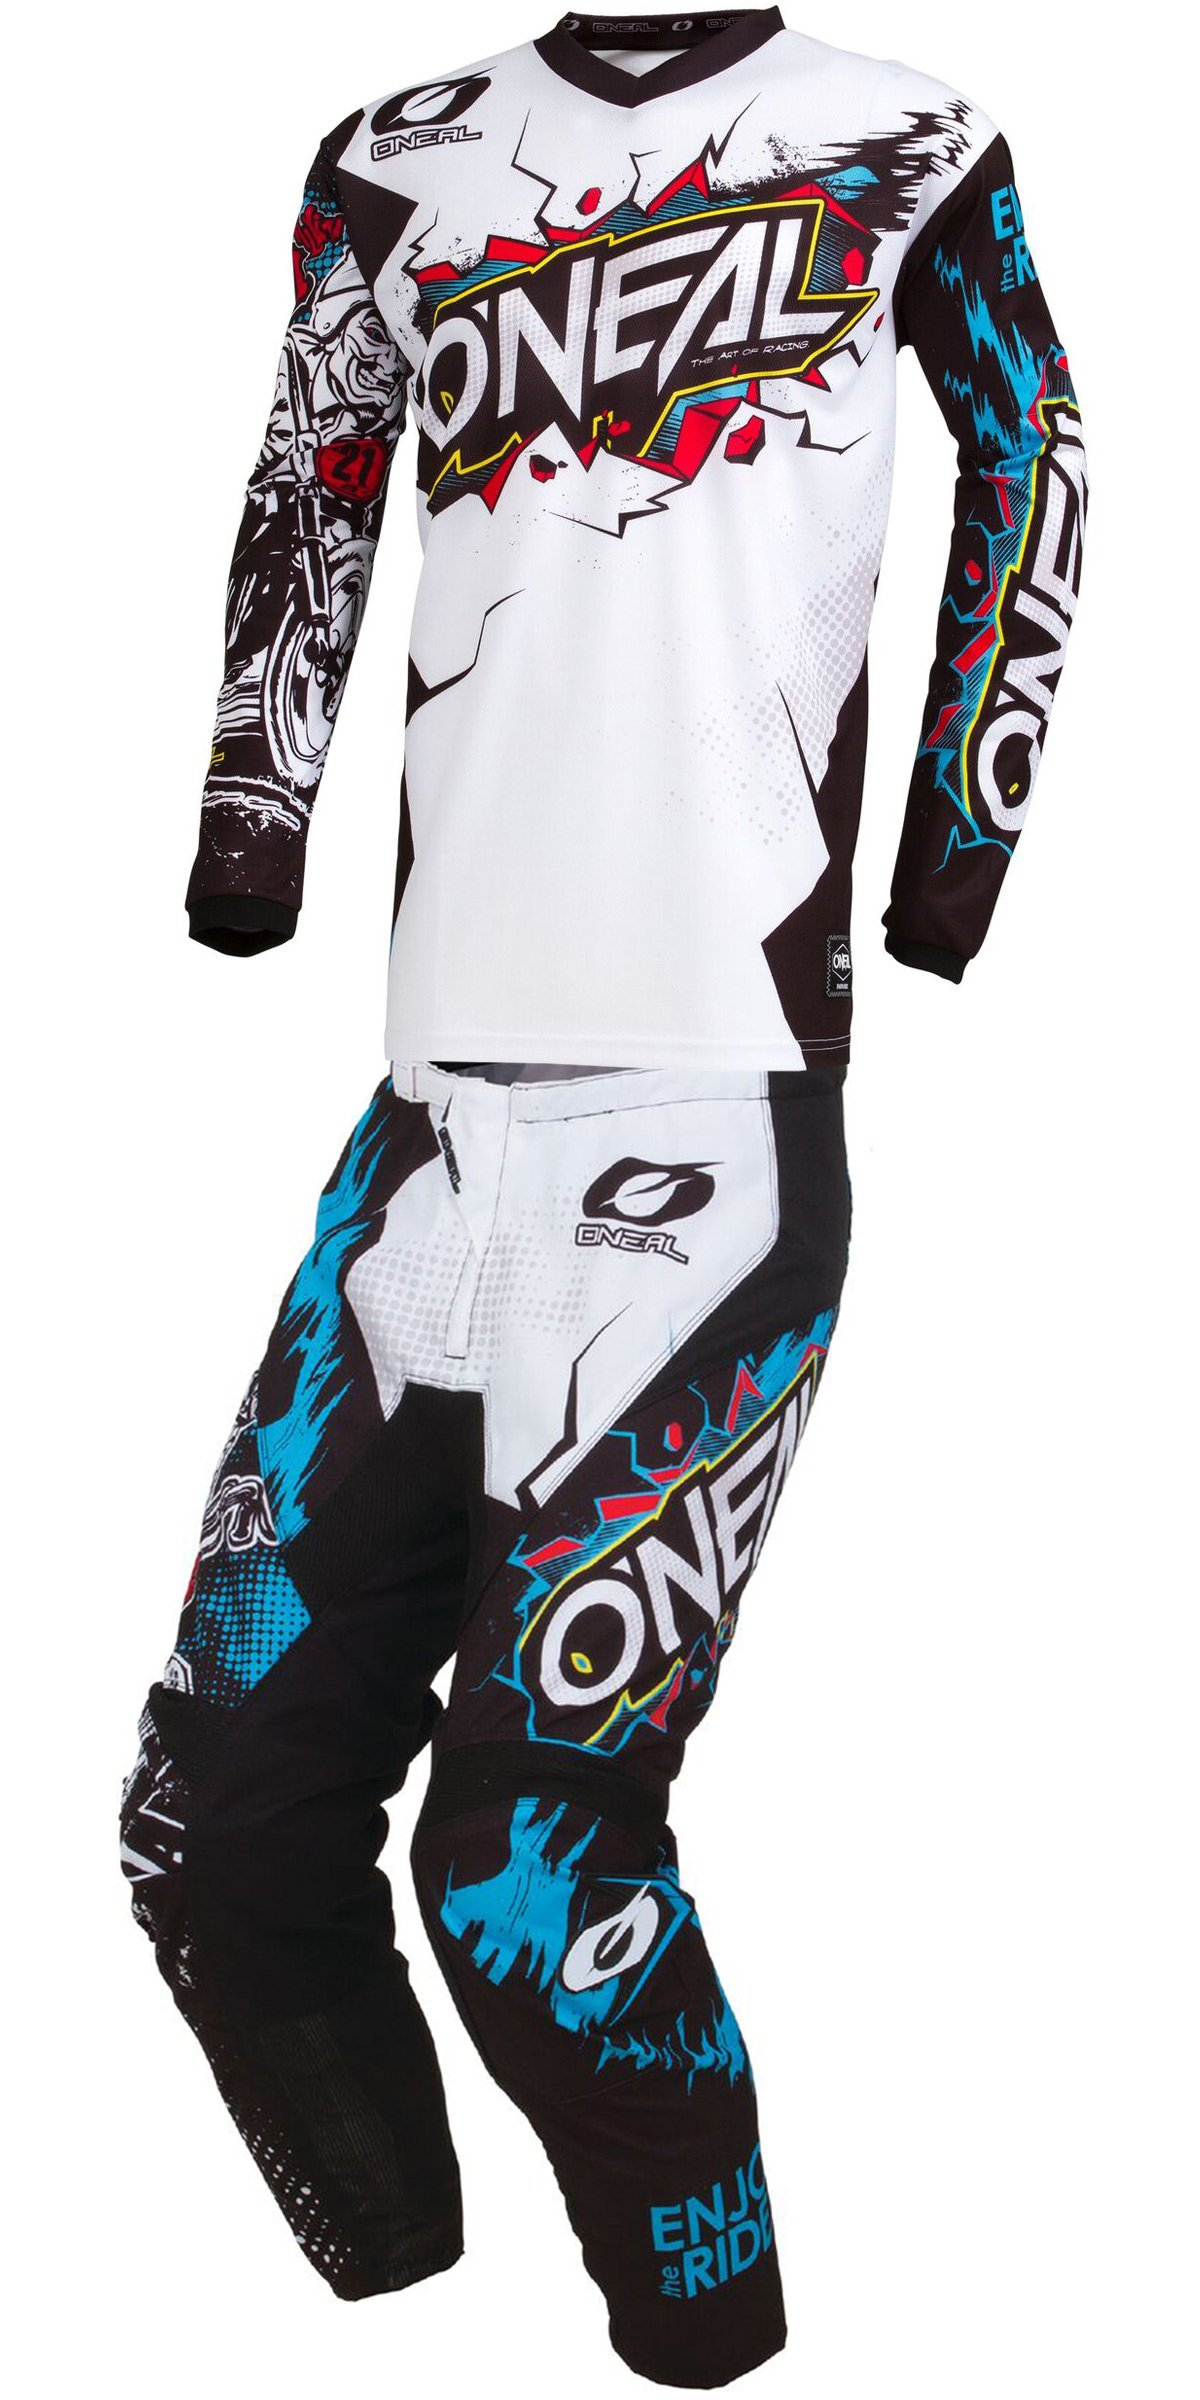 O'Neal - 2019 Element Villain (Youth Black & White Y-Small/Y-22W) MX Riding Gear Combo Set, Motocross Off-Road Dirt Bike Jersey & Pant